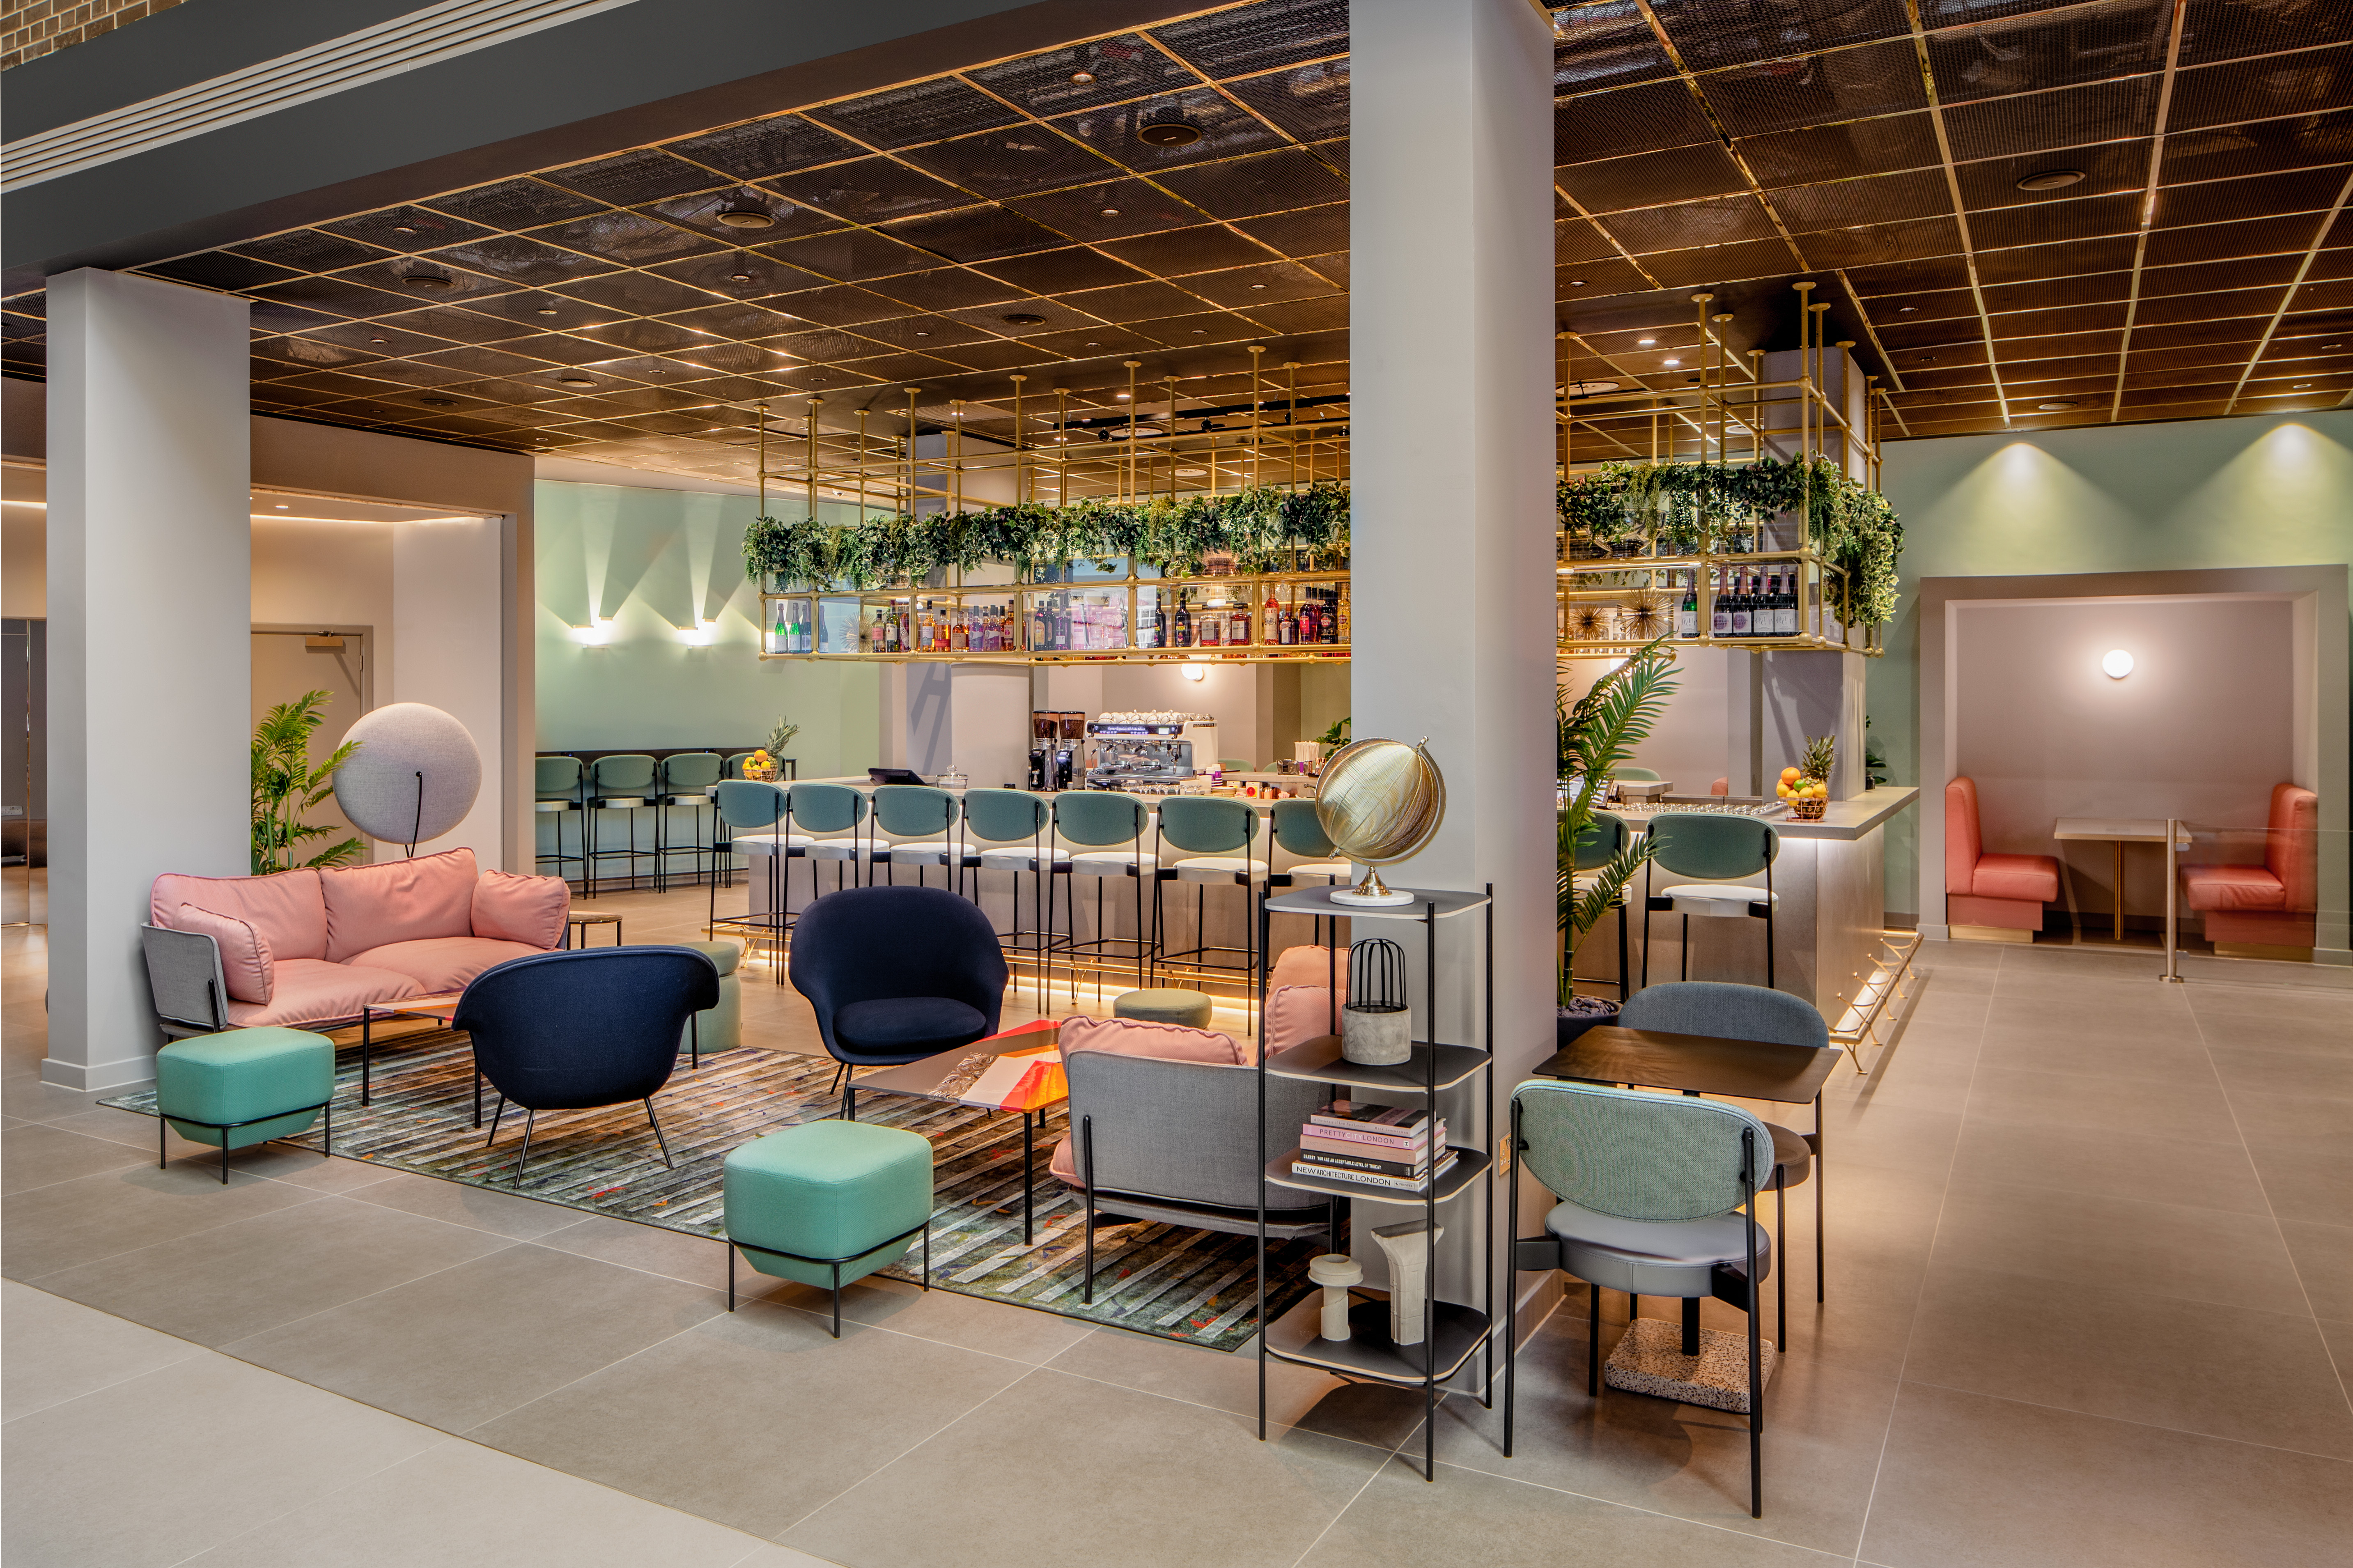 YOTEL's laidback restaurant offers a range of tasty dishes, along with speciality beers and cocktails